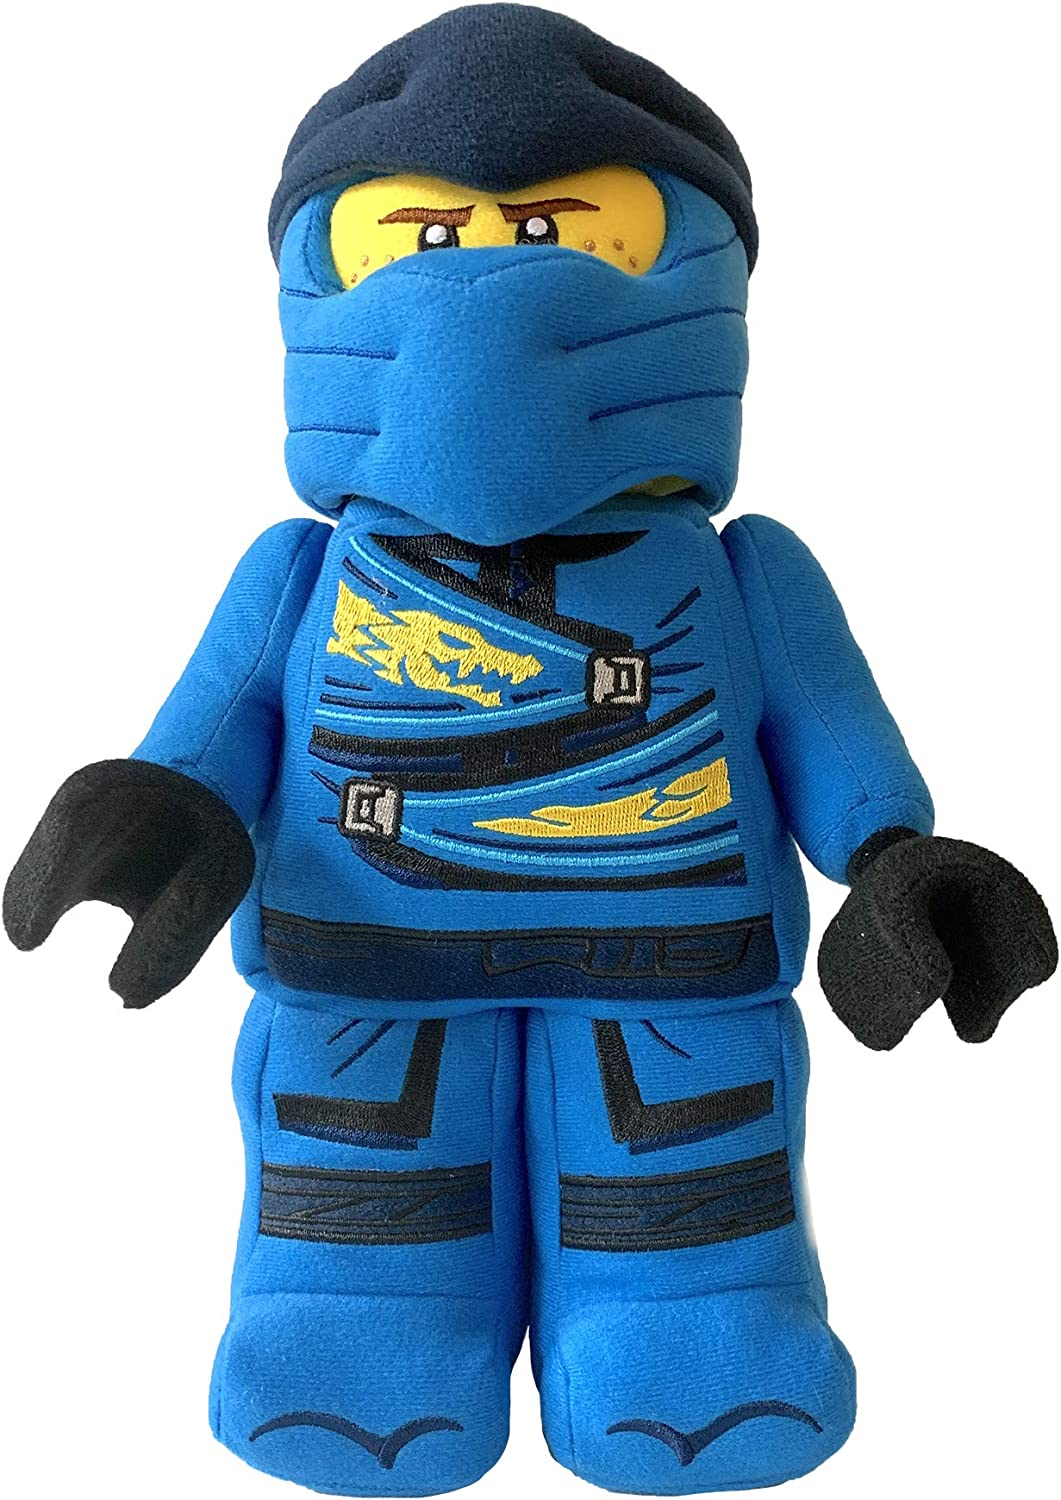 "Manhattan Toy Lego NINJAGO Jay Ninja Warrior 13"" Plush Character"